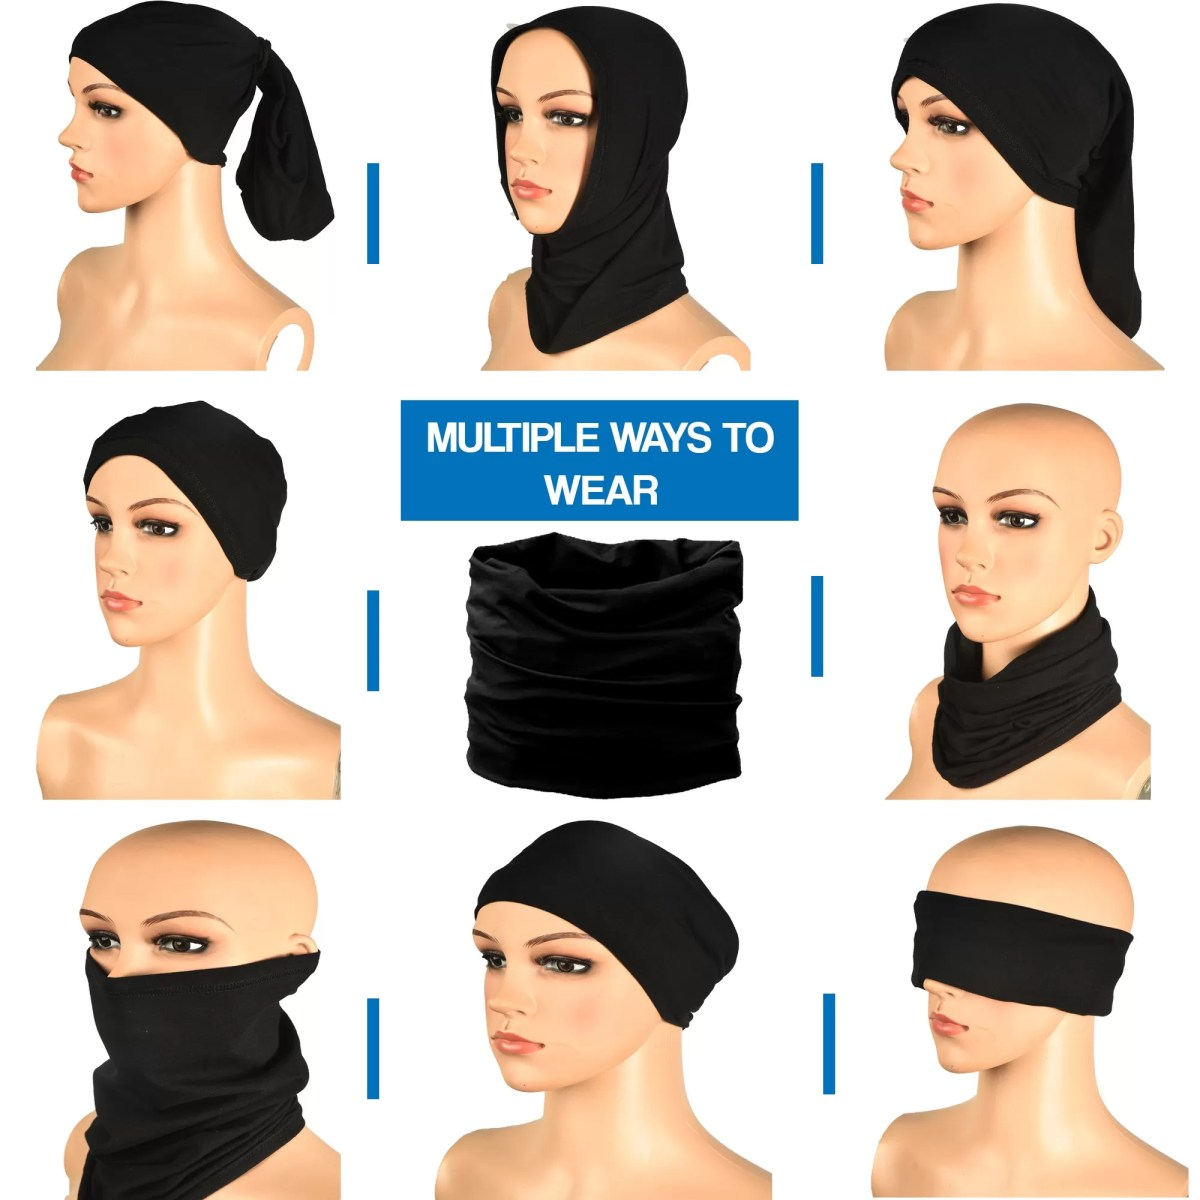 Bandana MULTIPLE WAYS TO WEAR